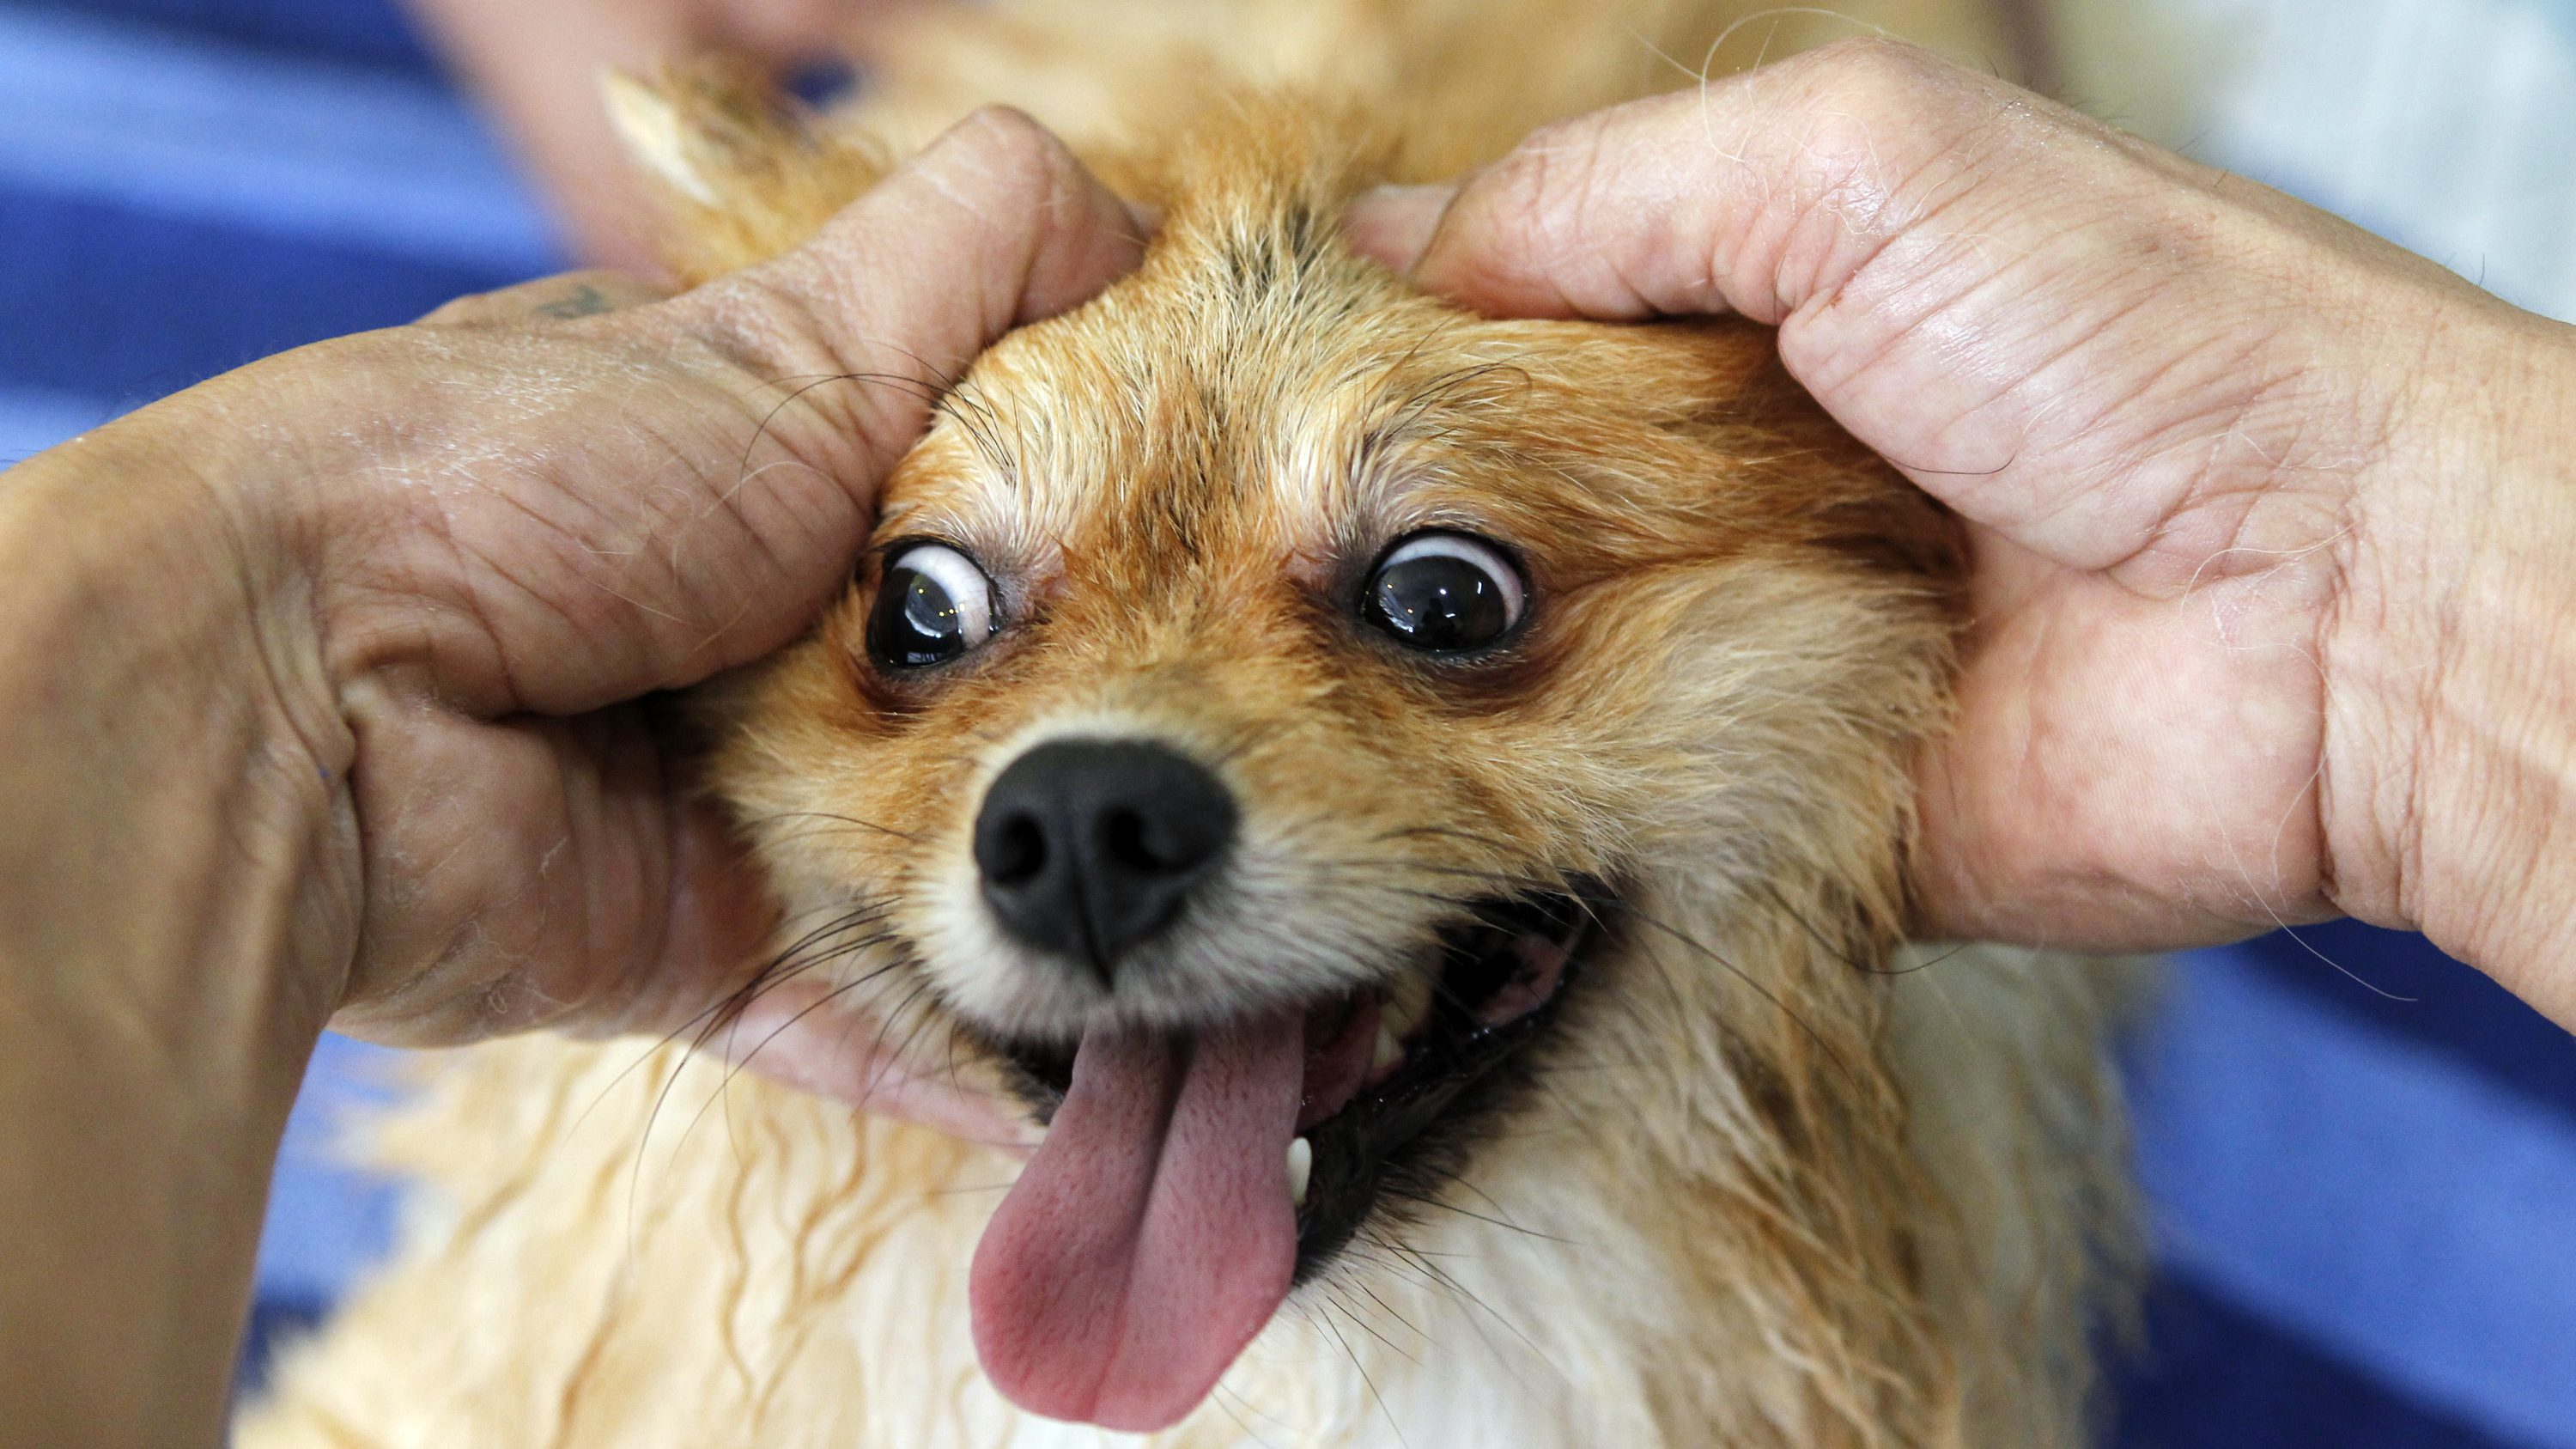 Pepito, a pomeranian, gets a massage at a dog spa in Cainta, Metro Manila July 19, 2011. While dog grooming is becoming popular in major cities in the Philippines, local reports say about 500,000 dogs are killed as dog meat is considered a delicacy in some parts of the country. The Philippine Animal Welfare Act prohibits torturing and killing of dogs for commercial sale.